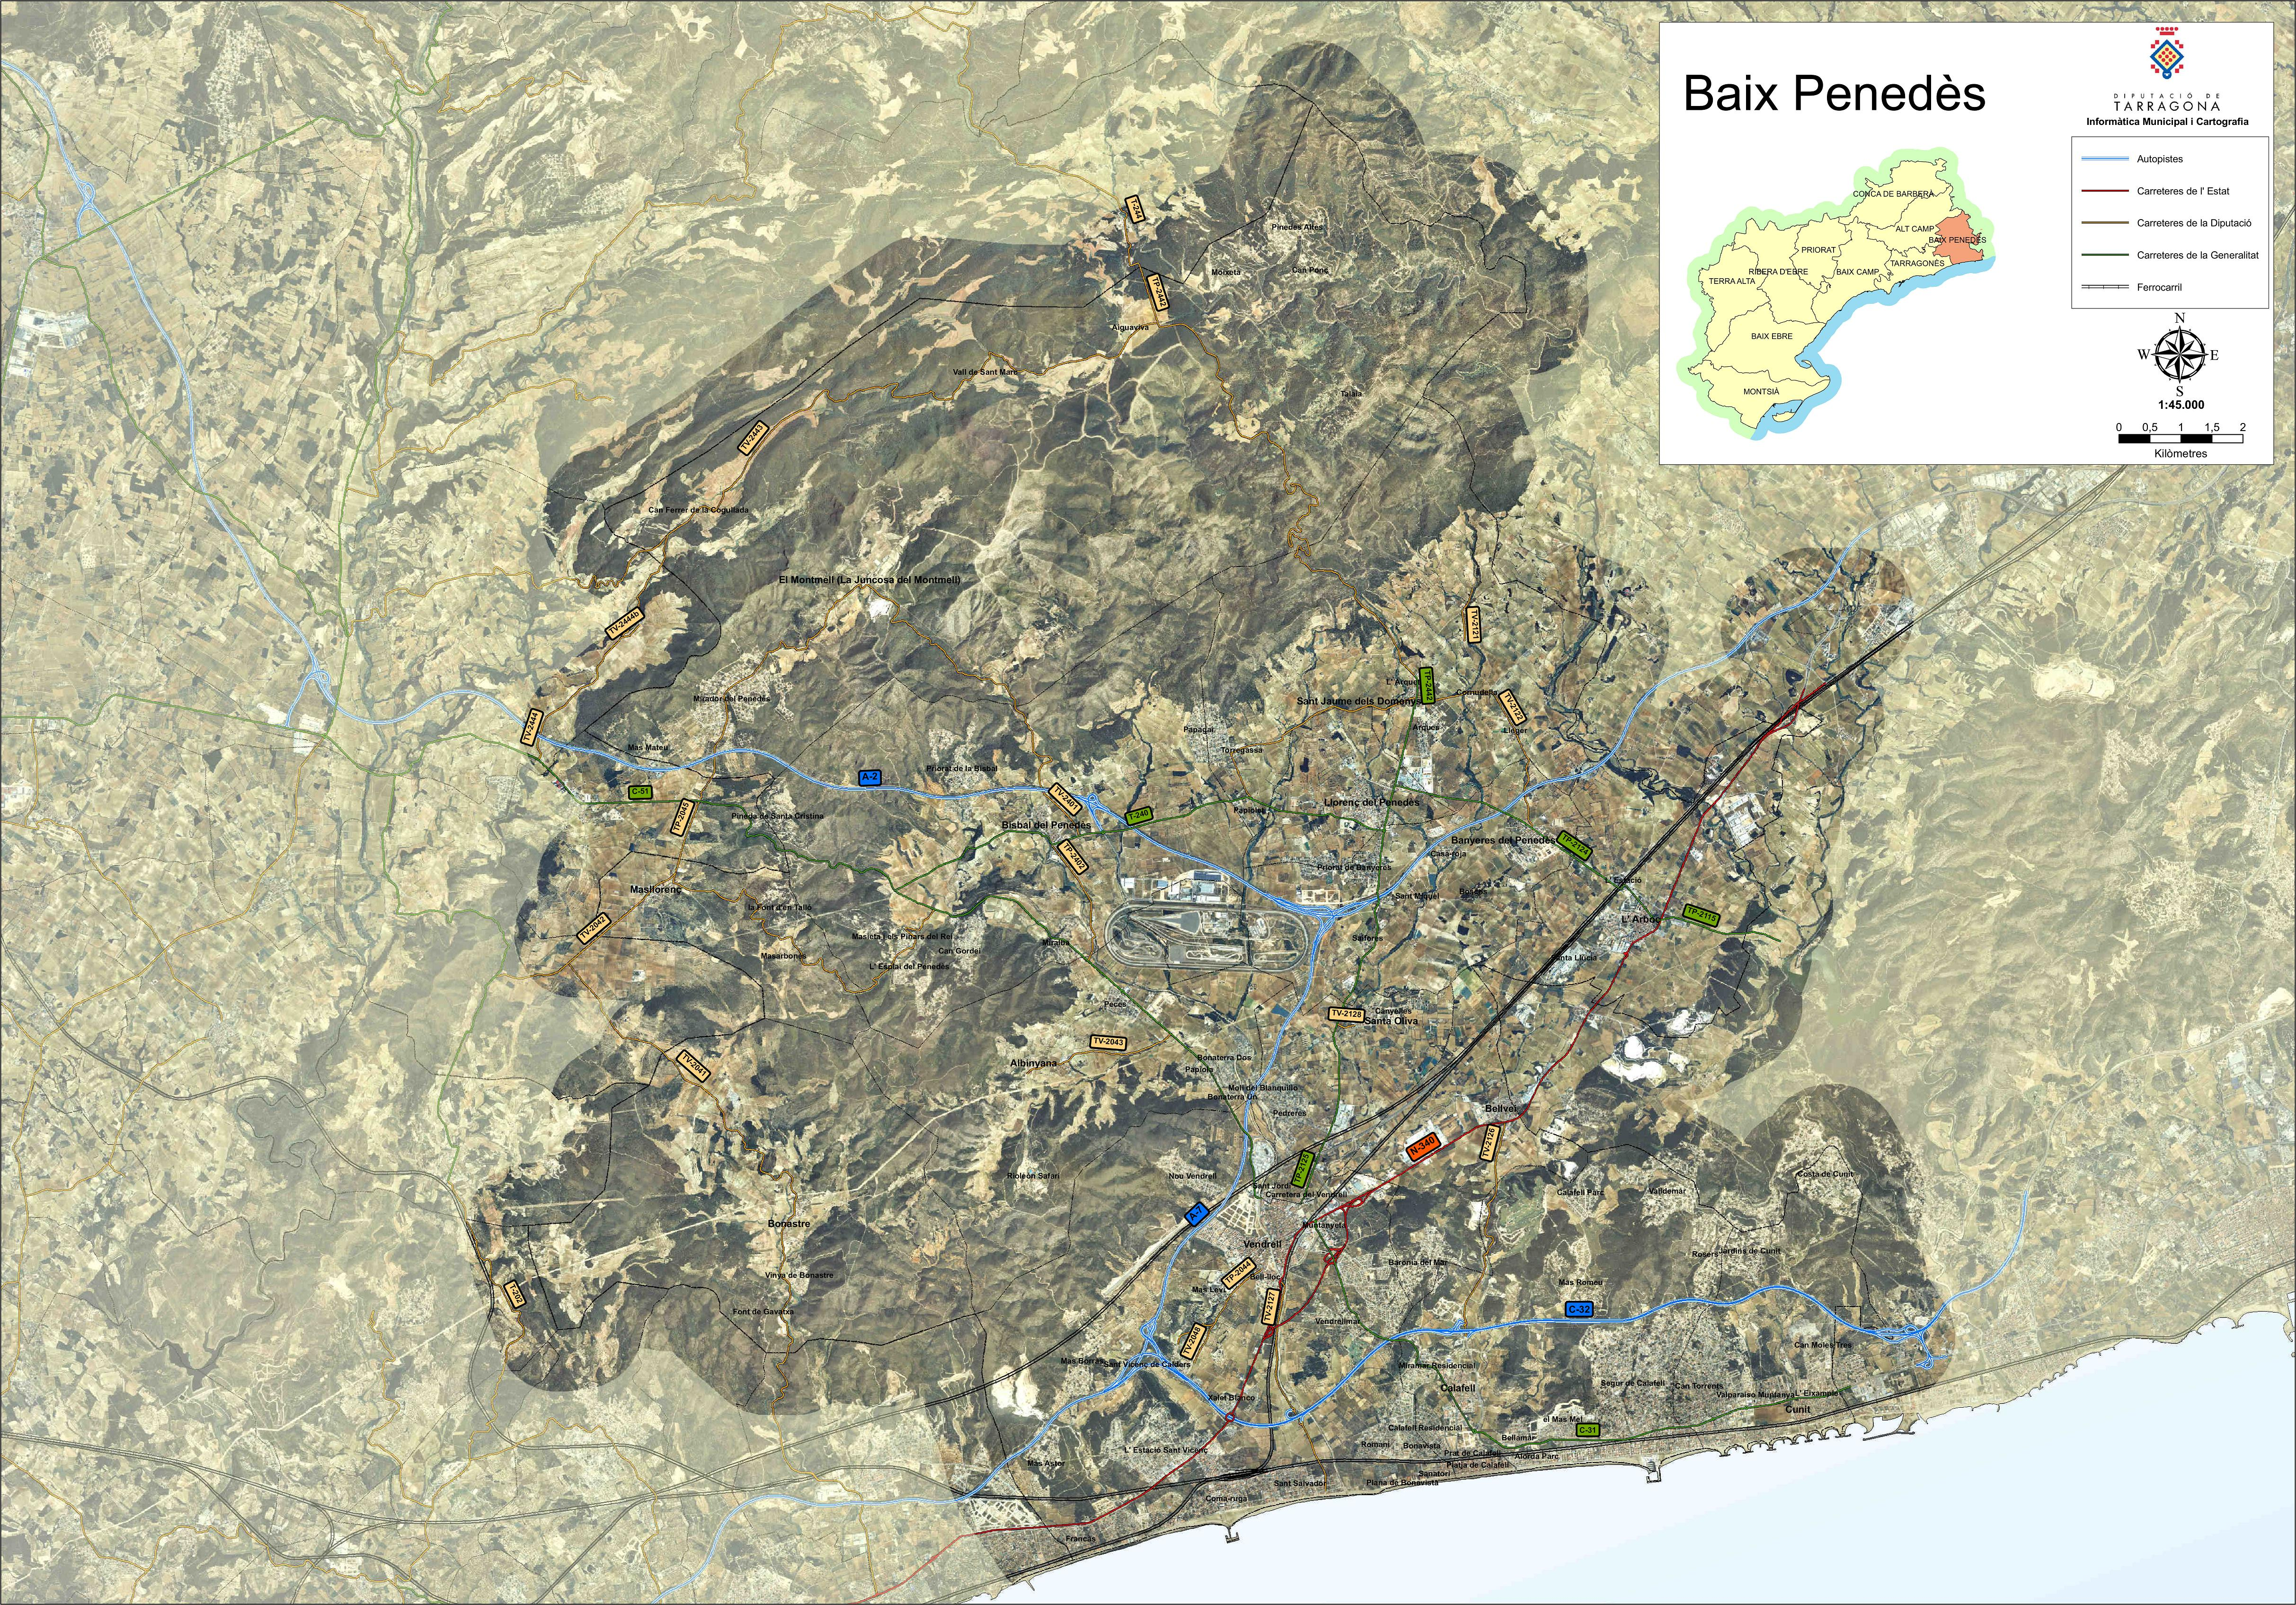 Satellite and road map of the comarca of Baix Penedès